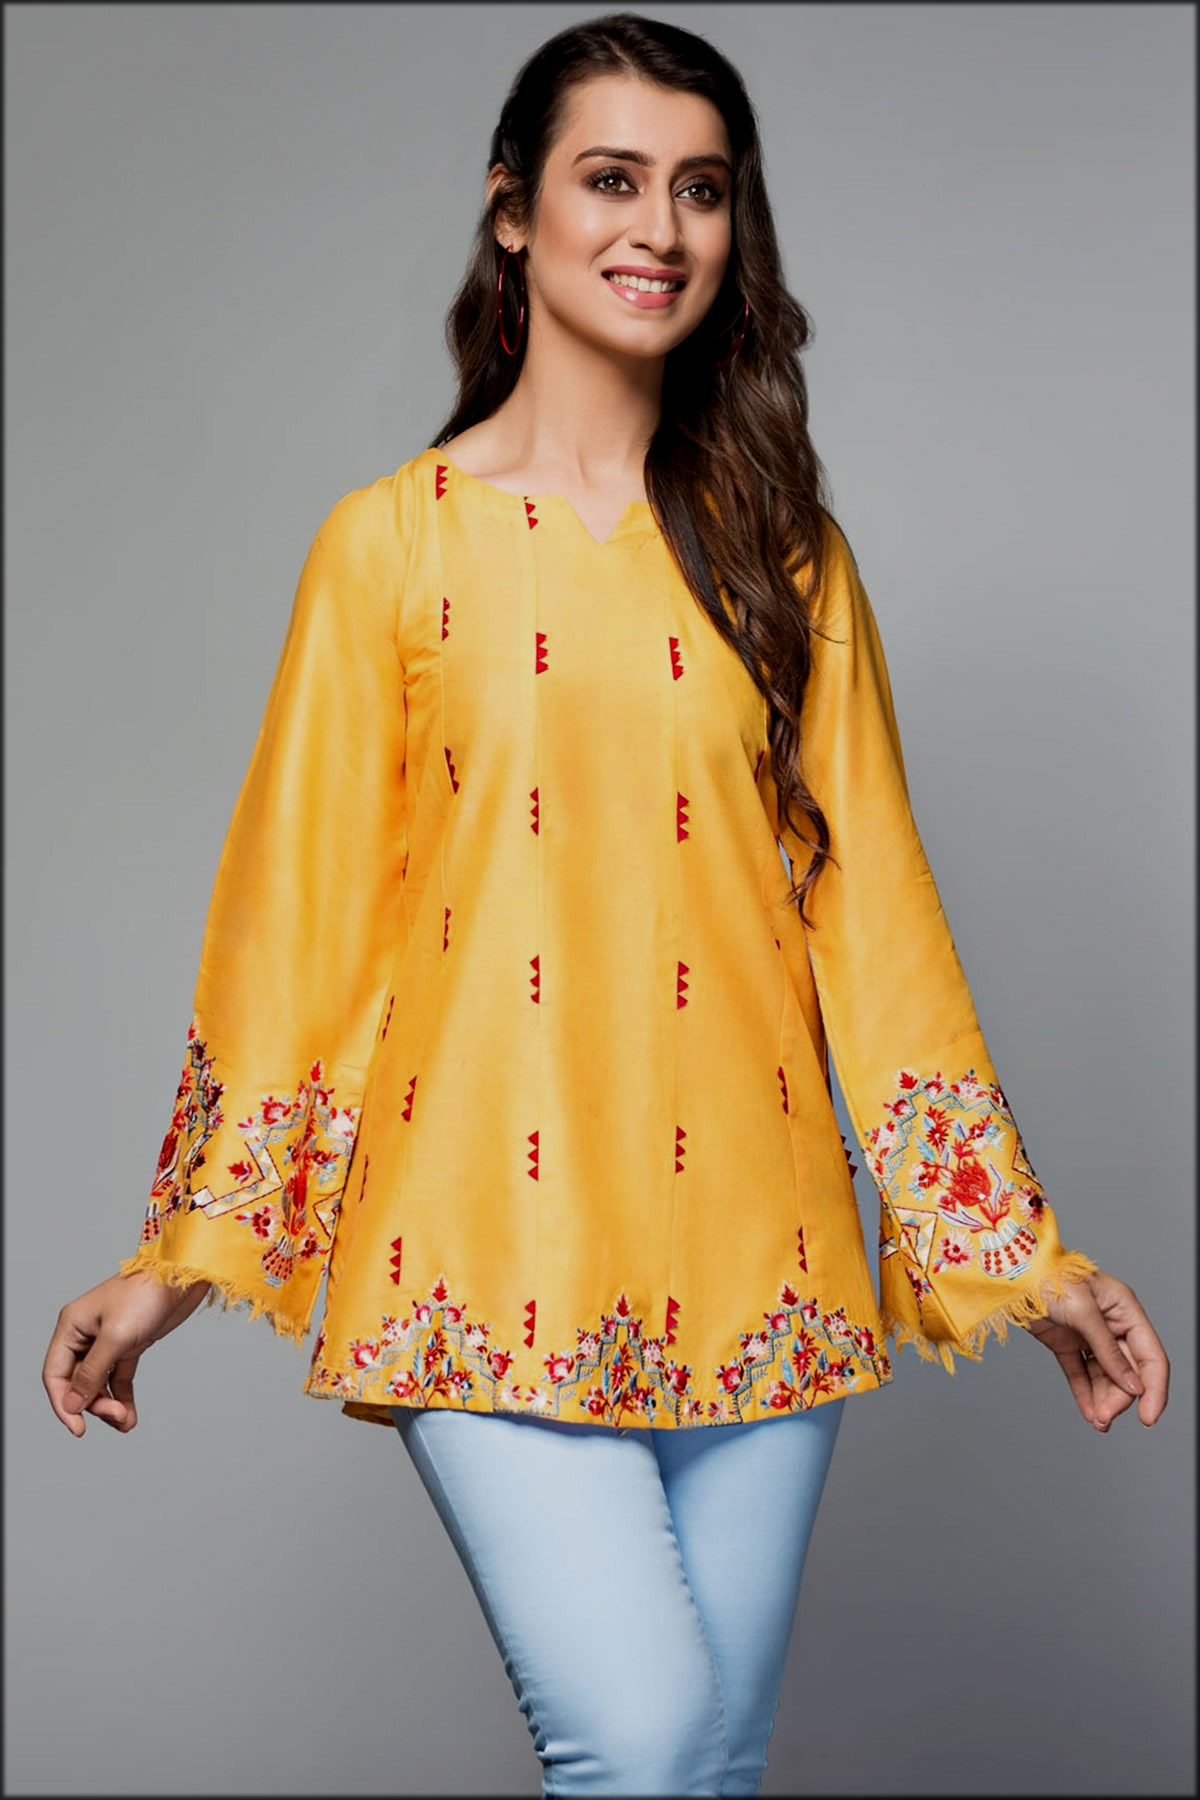 yellow top collection for youngest